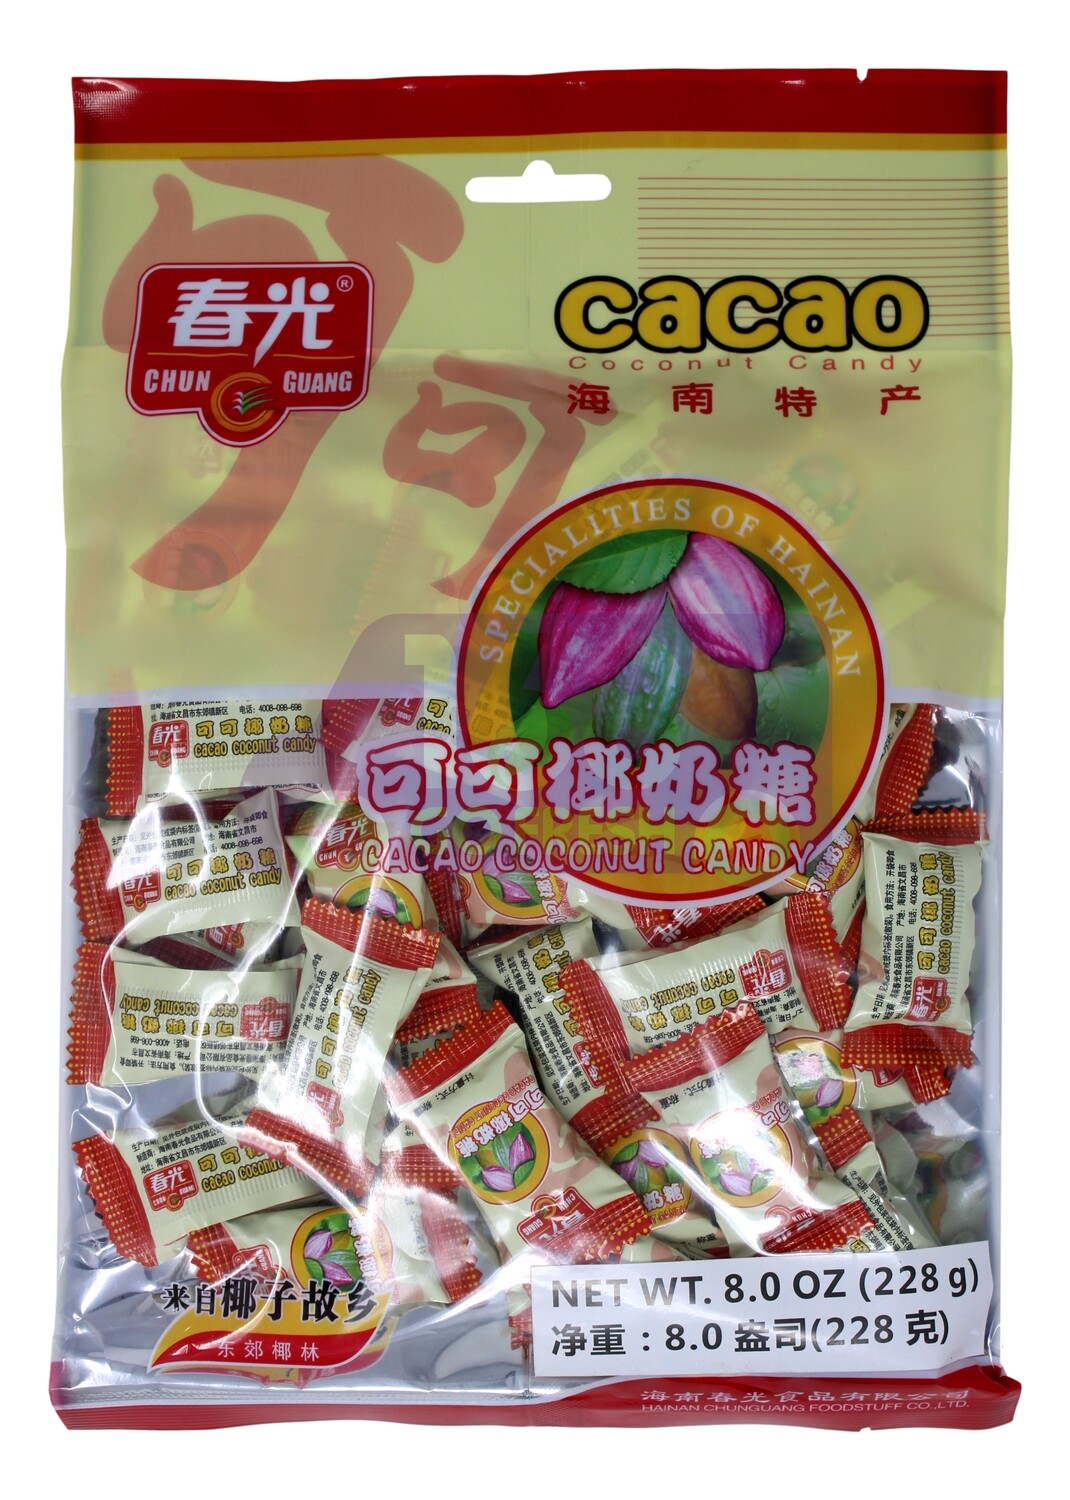 CACAO COCONUT CANDY 春光 可可椰奶糖(19.4OZ)